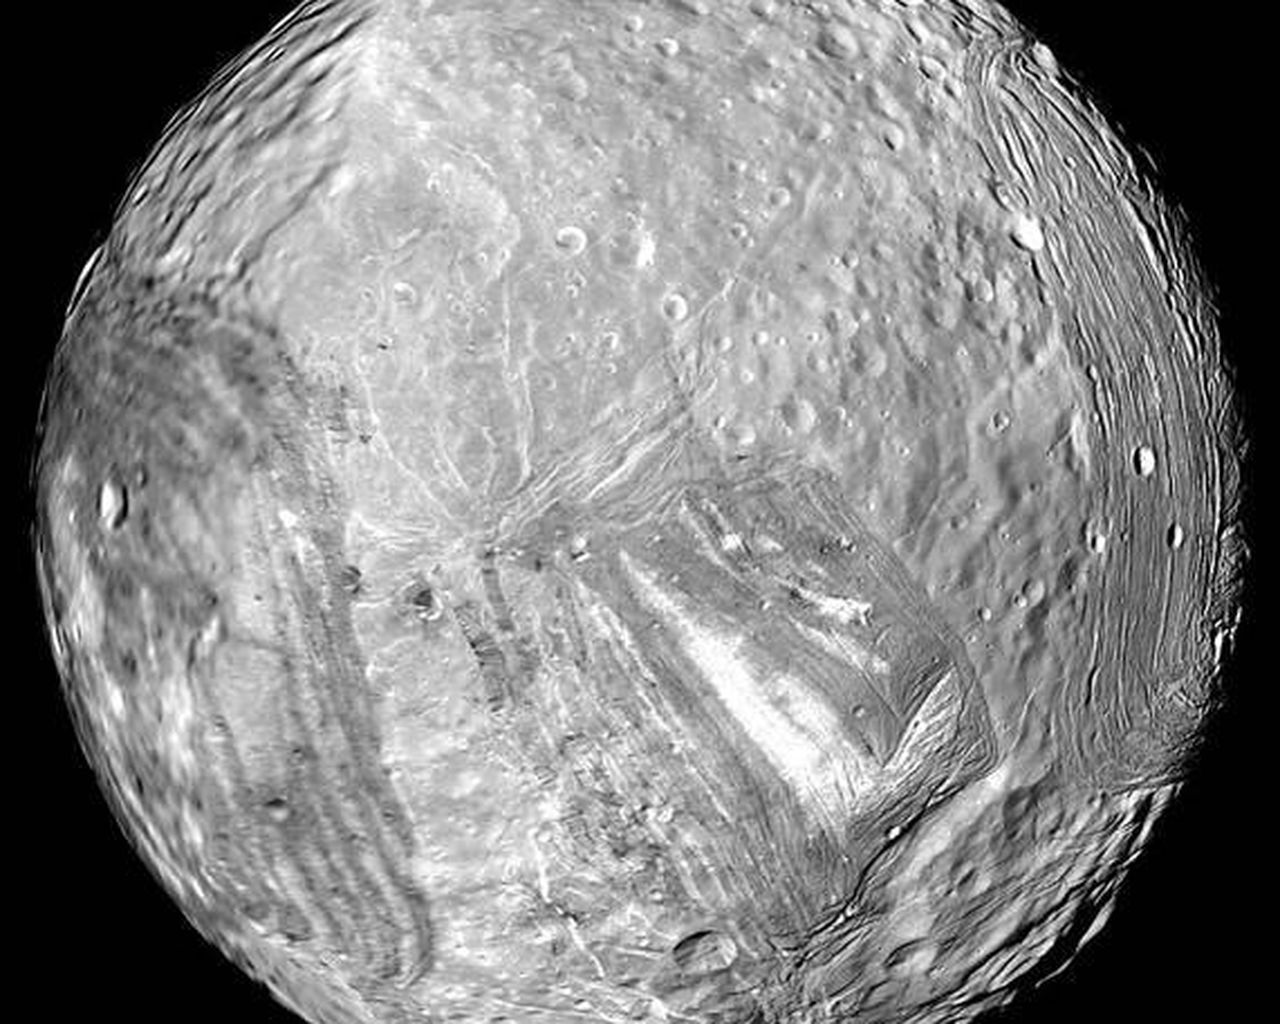 hd uranus moon miranda - photo #1